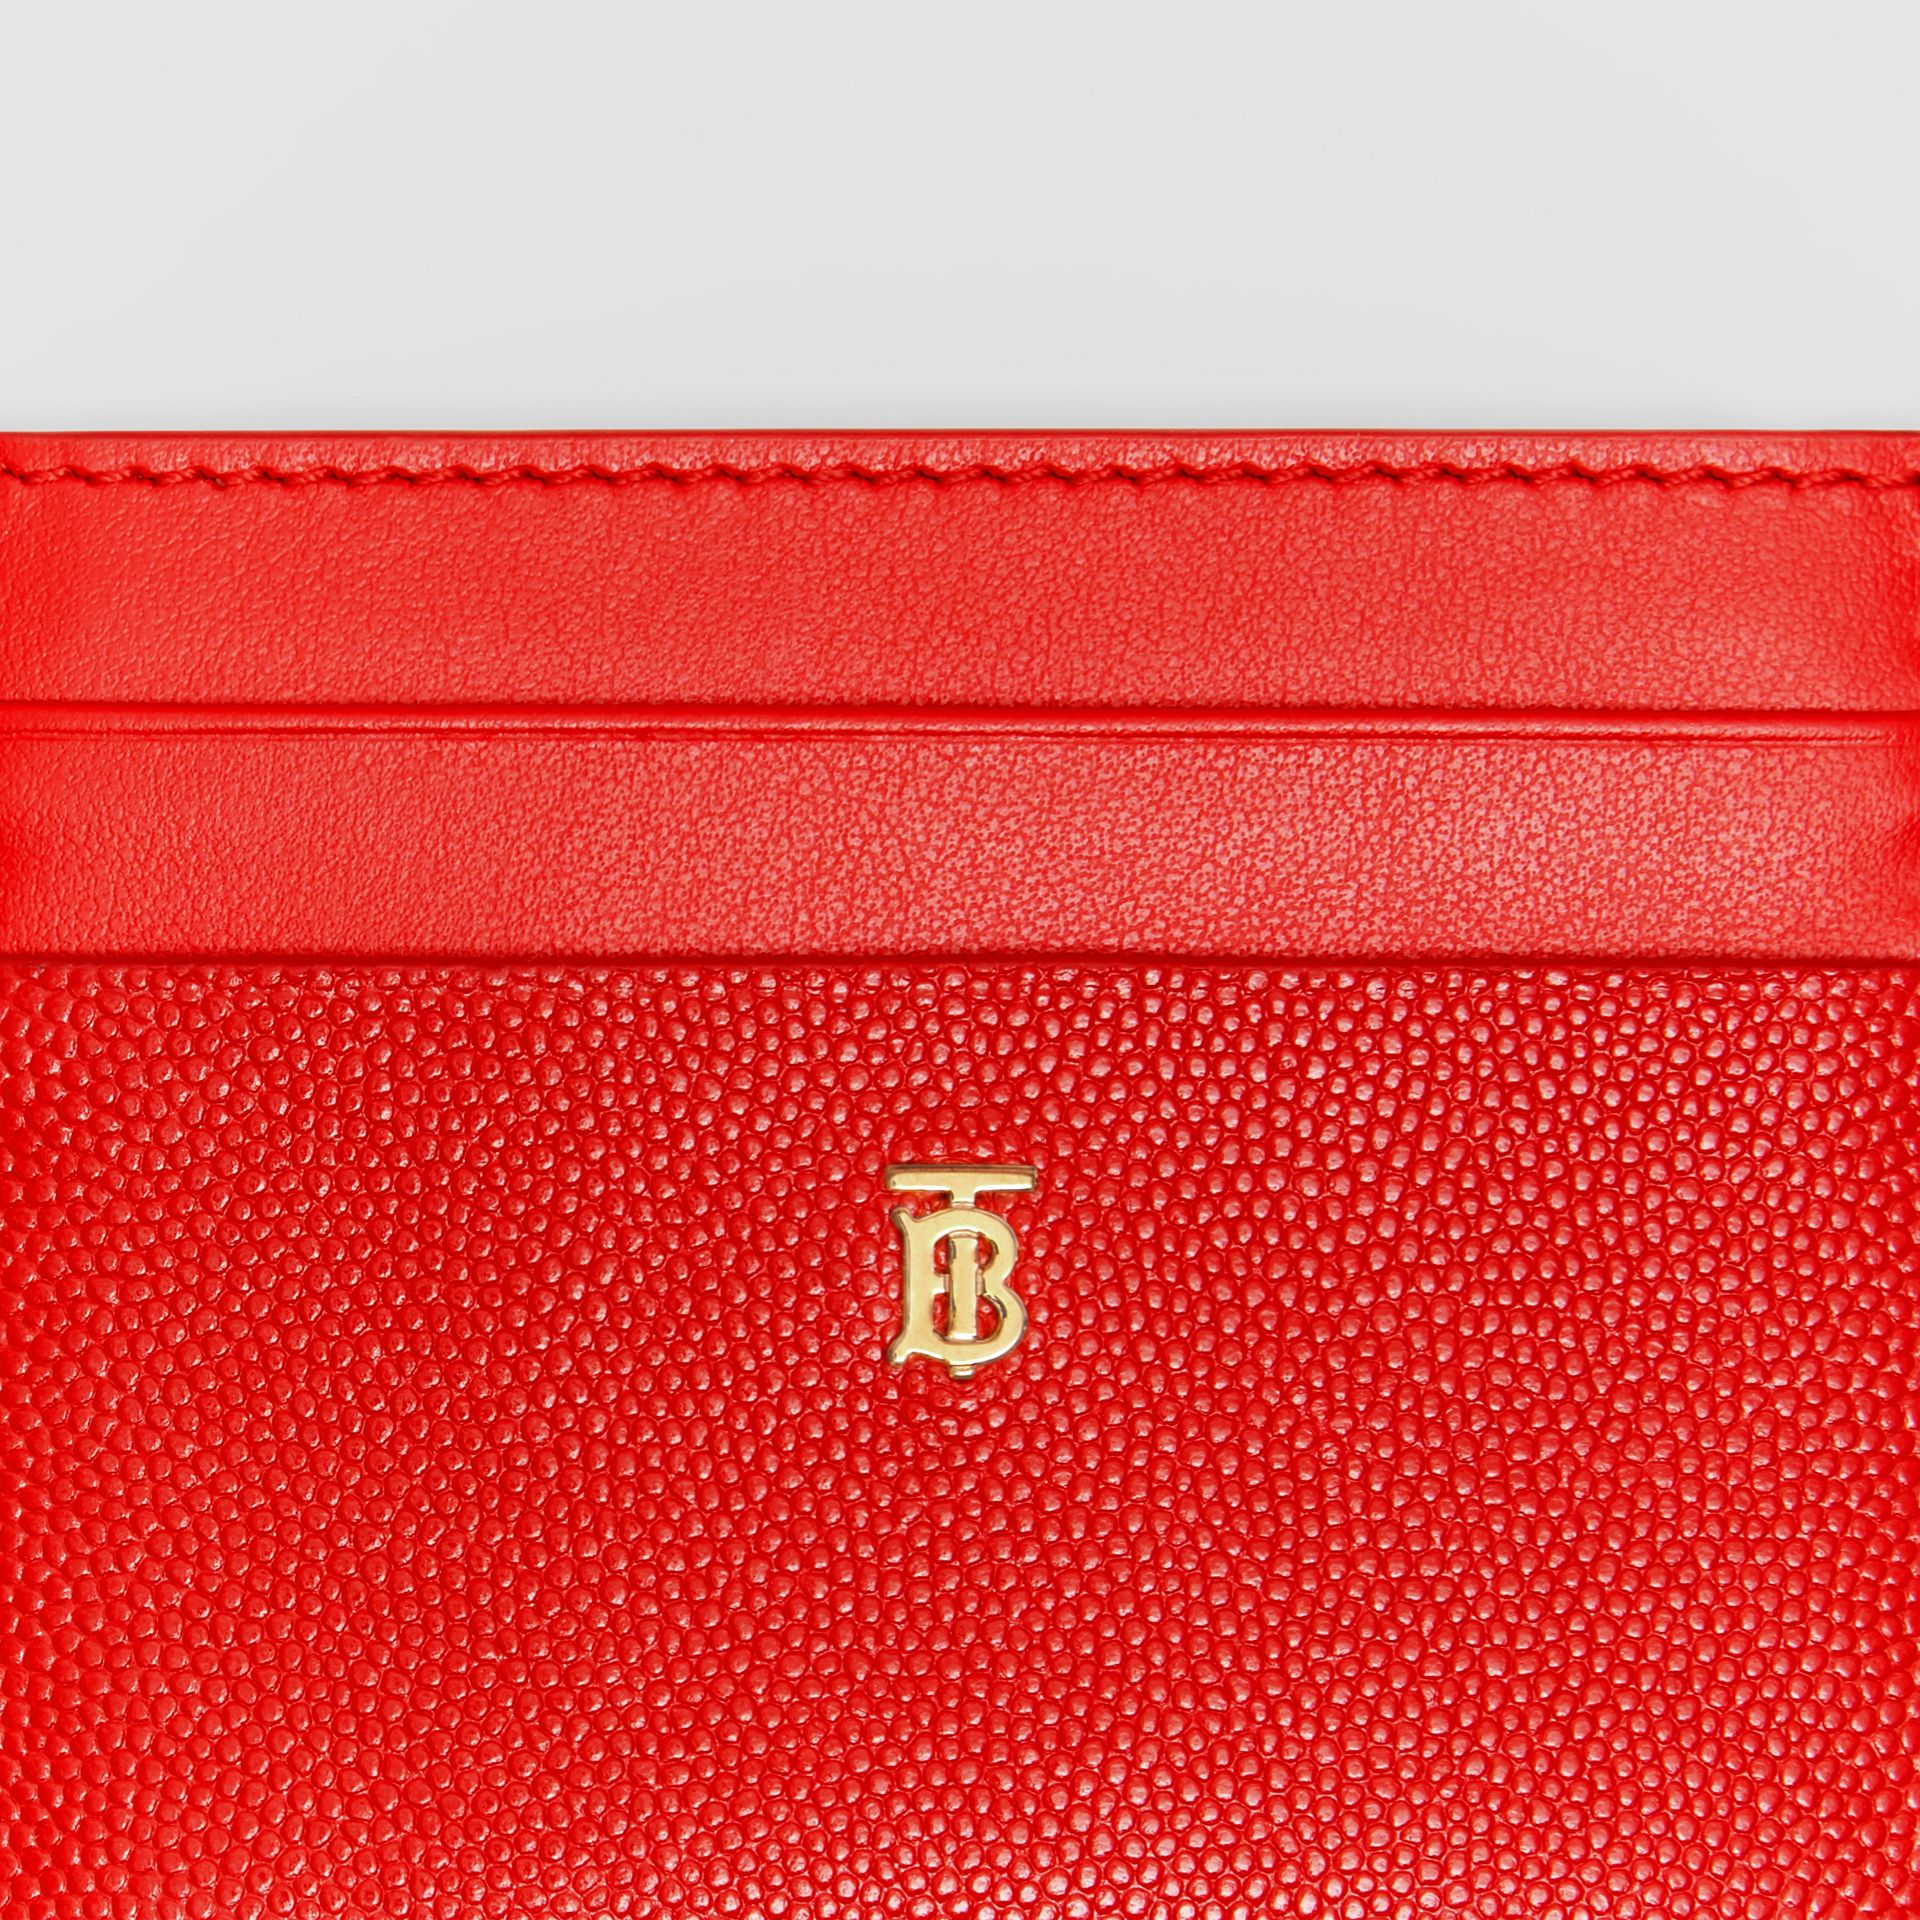 Monogram Motif Leather Card Case in Bright Red - Women | Burberry Hong Kong S.A.R - gallery image 1